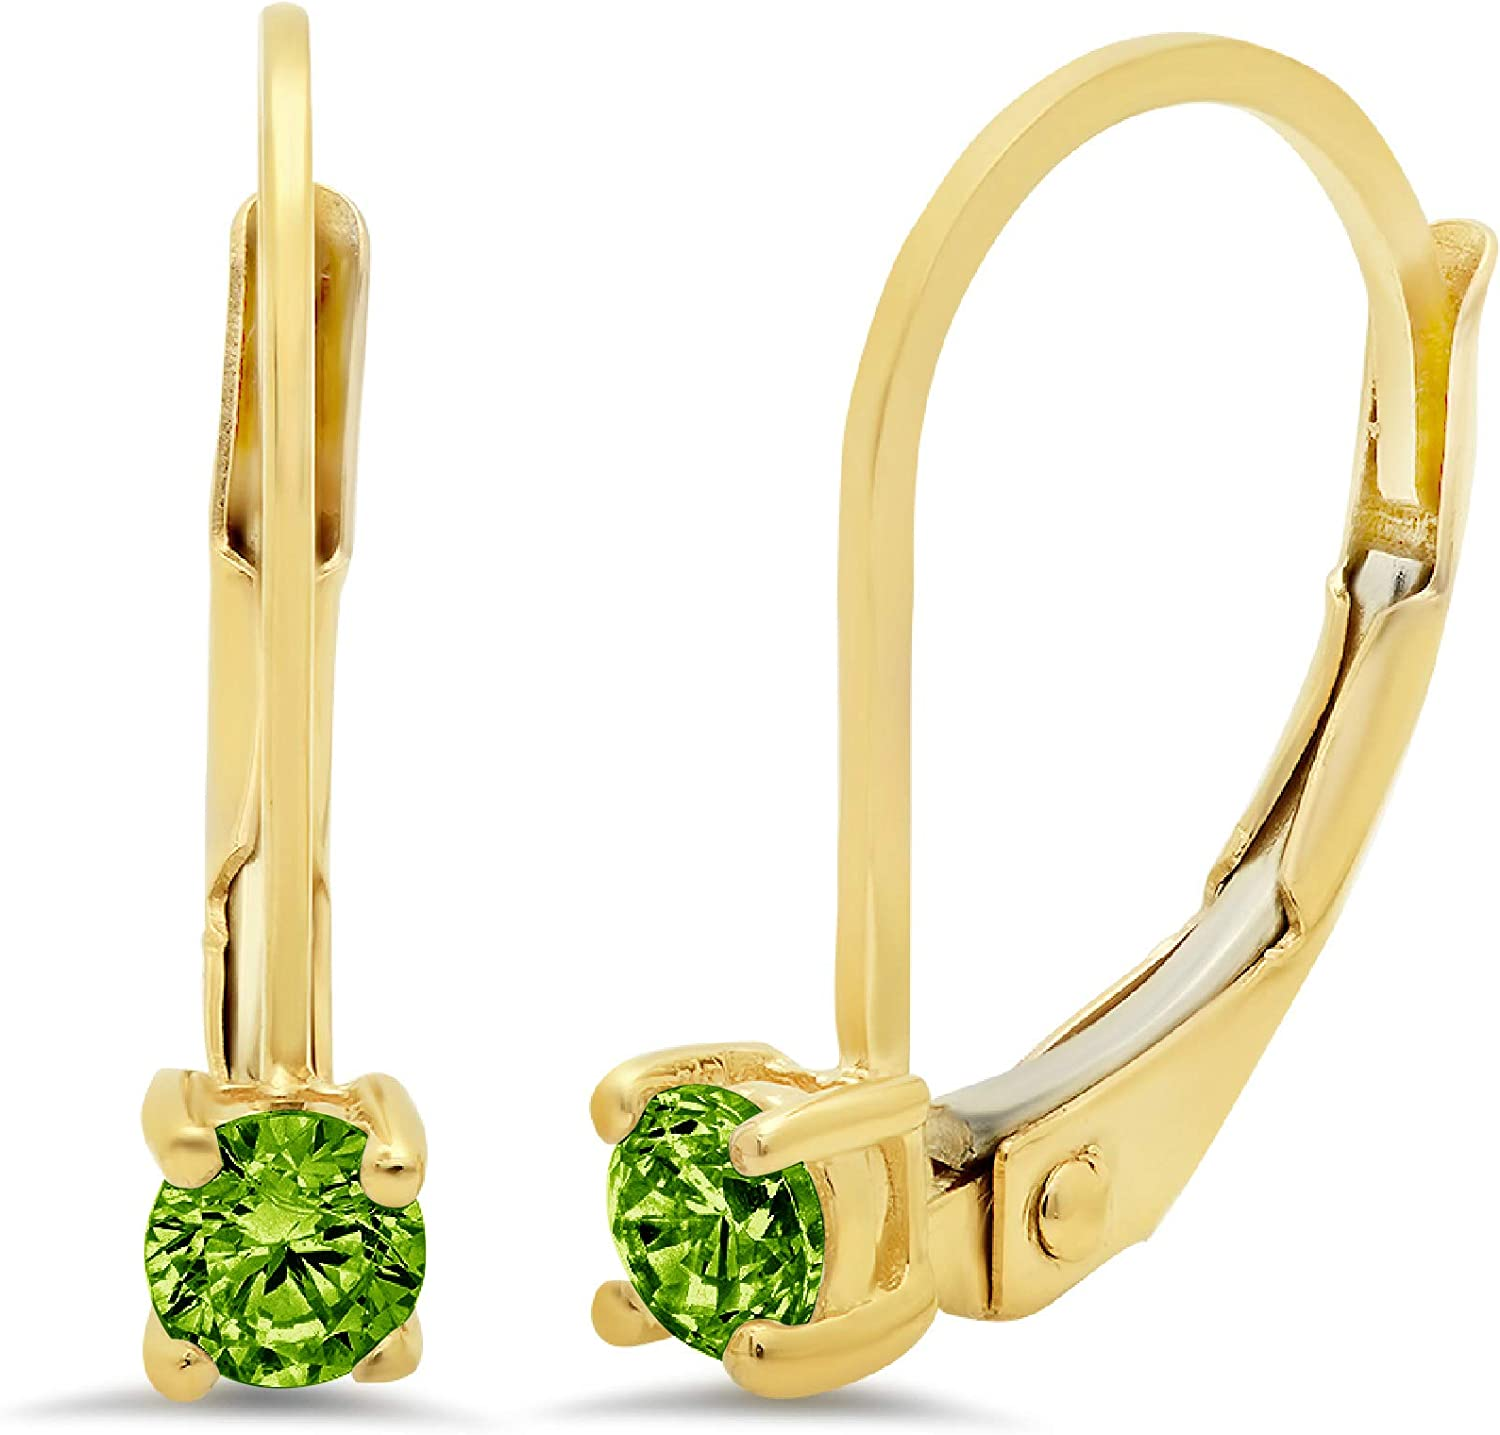 0.50 ct Brilliant Round Cut Solitaire Designer Genuine Natural Green Peridot Gemstone VVS1 Ideal Flawless pair of Leverback Drop Dangle Earrings Solid 14k Yellow Gold Clara Pucci